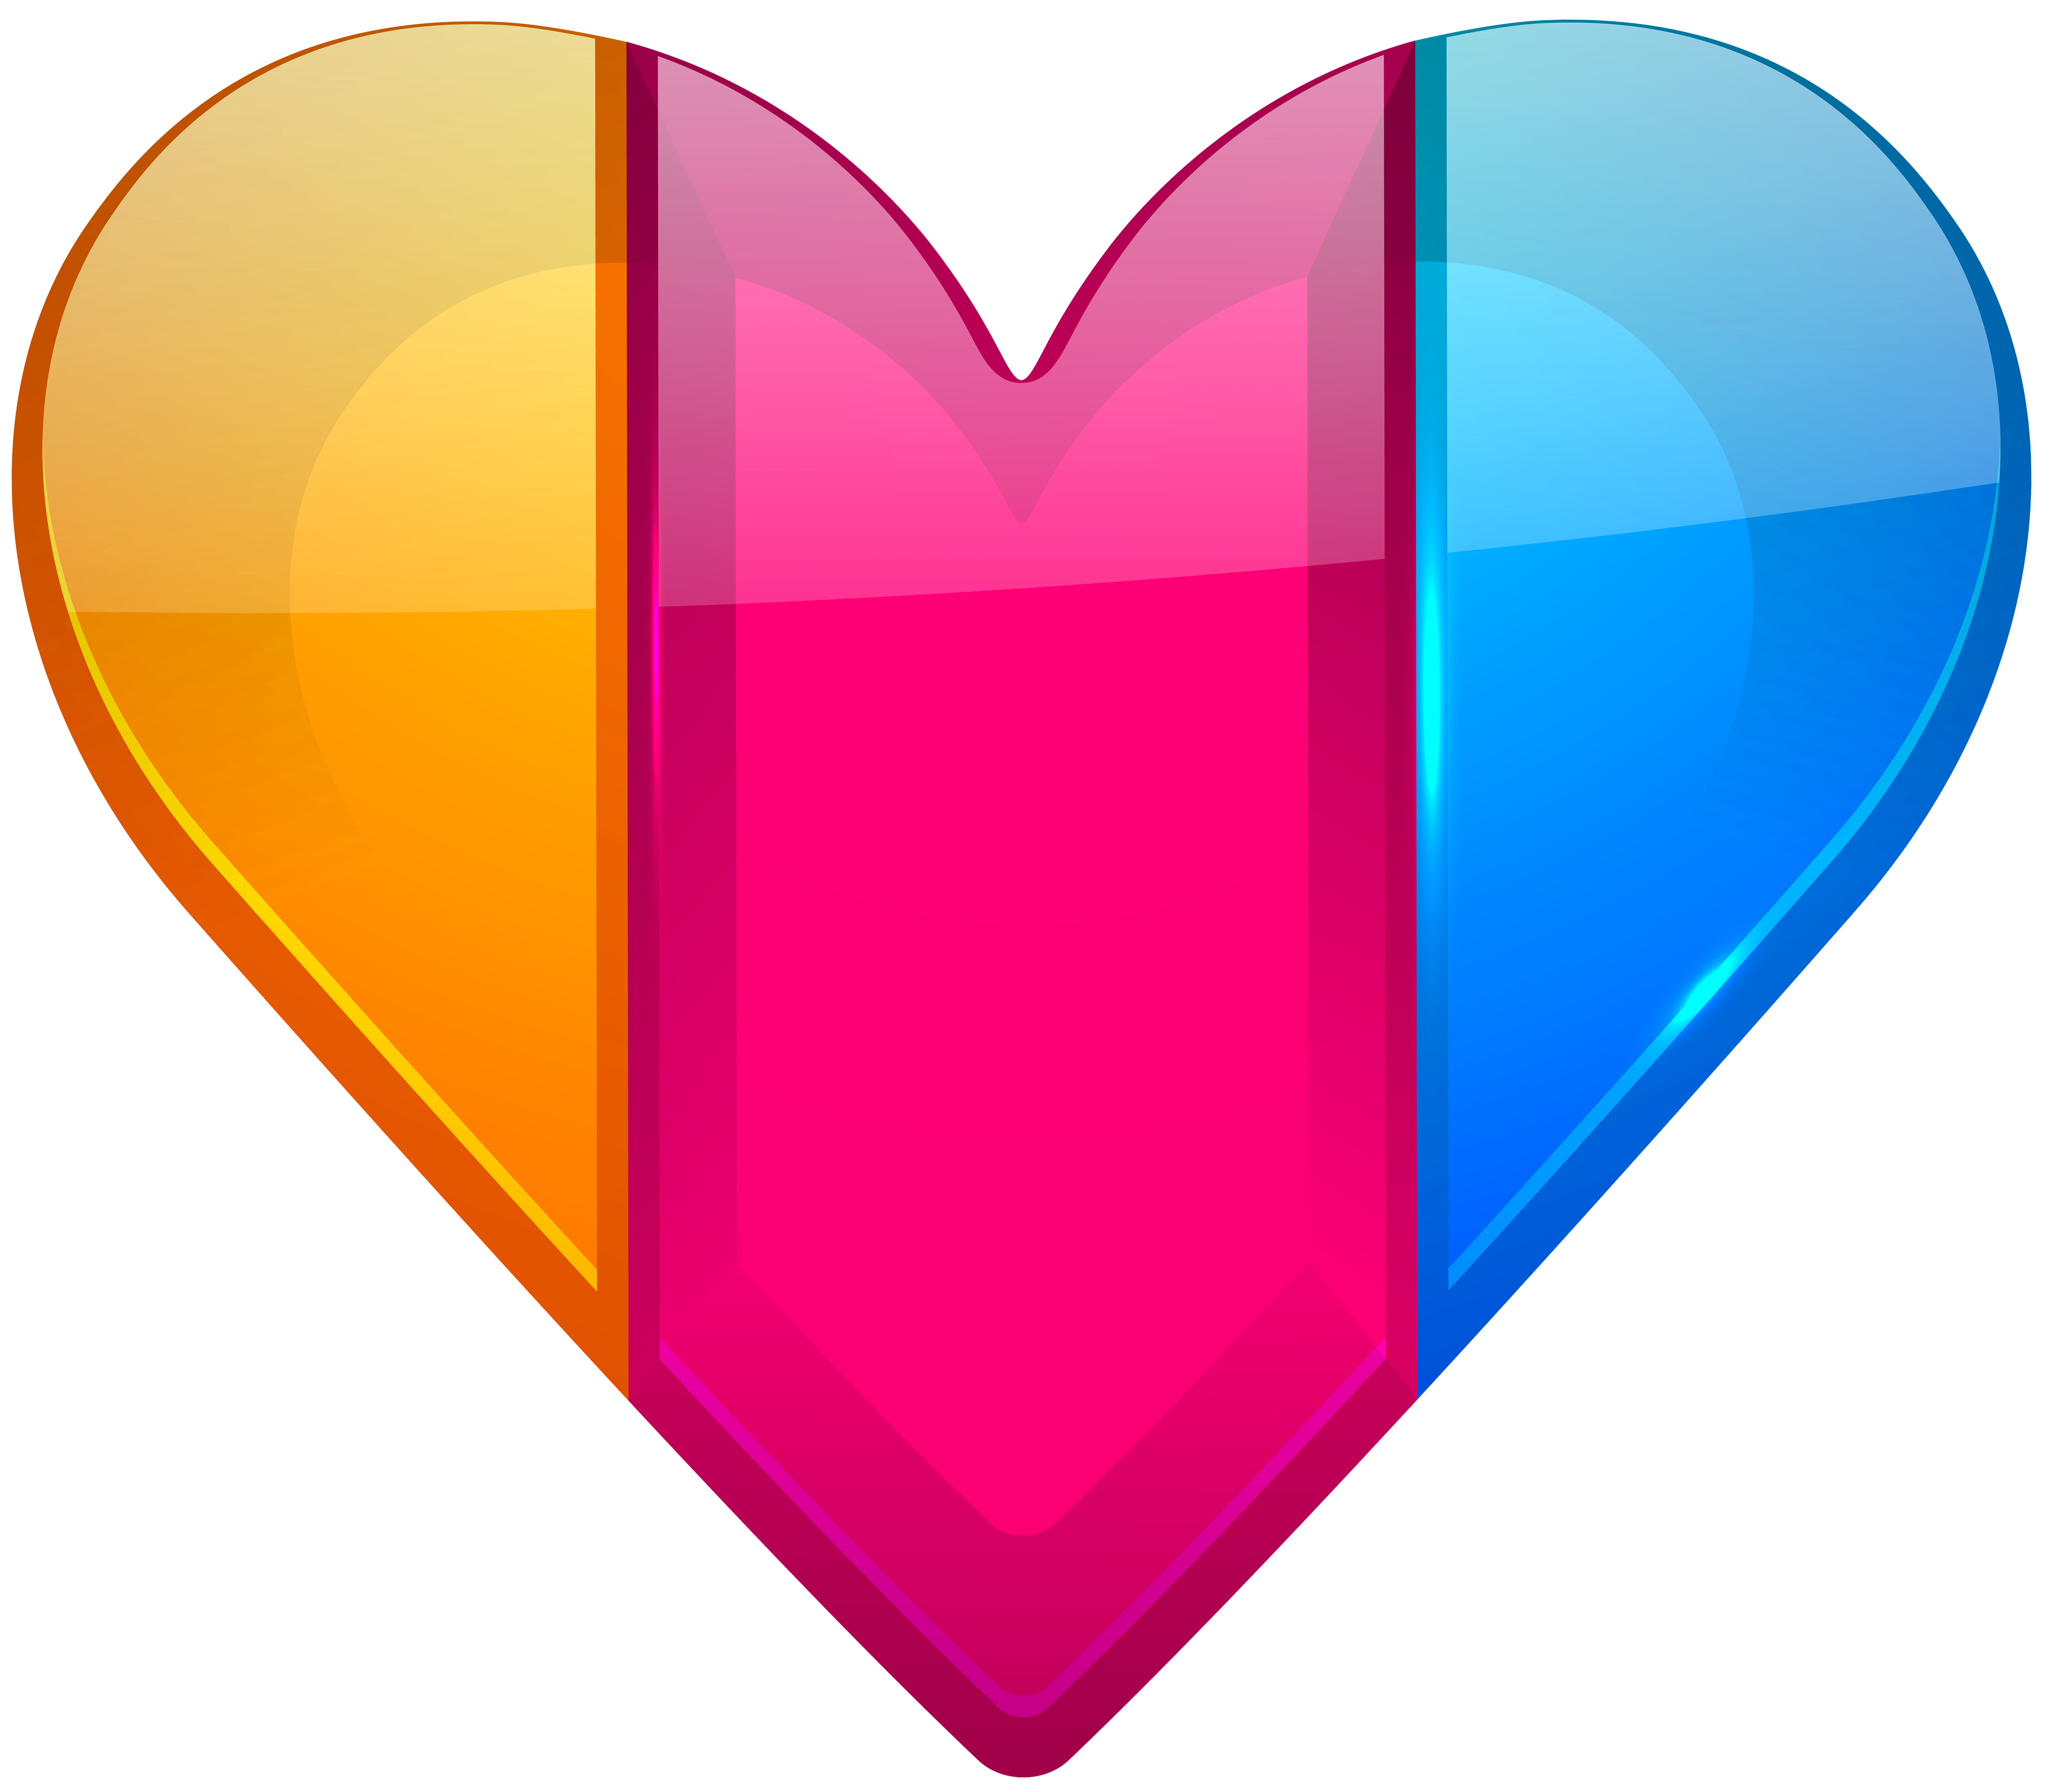 Colorful heart png.